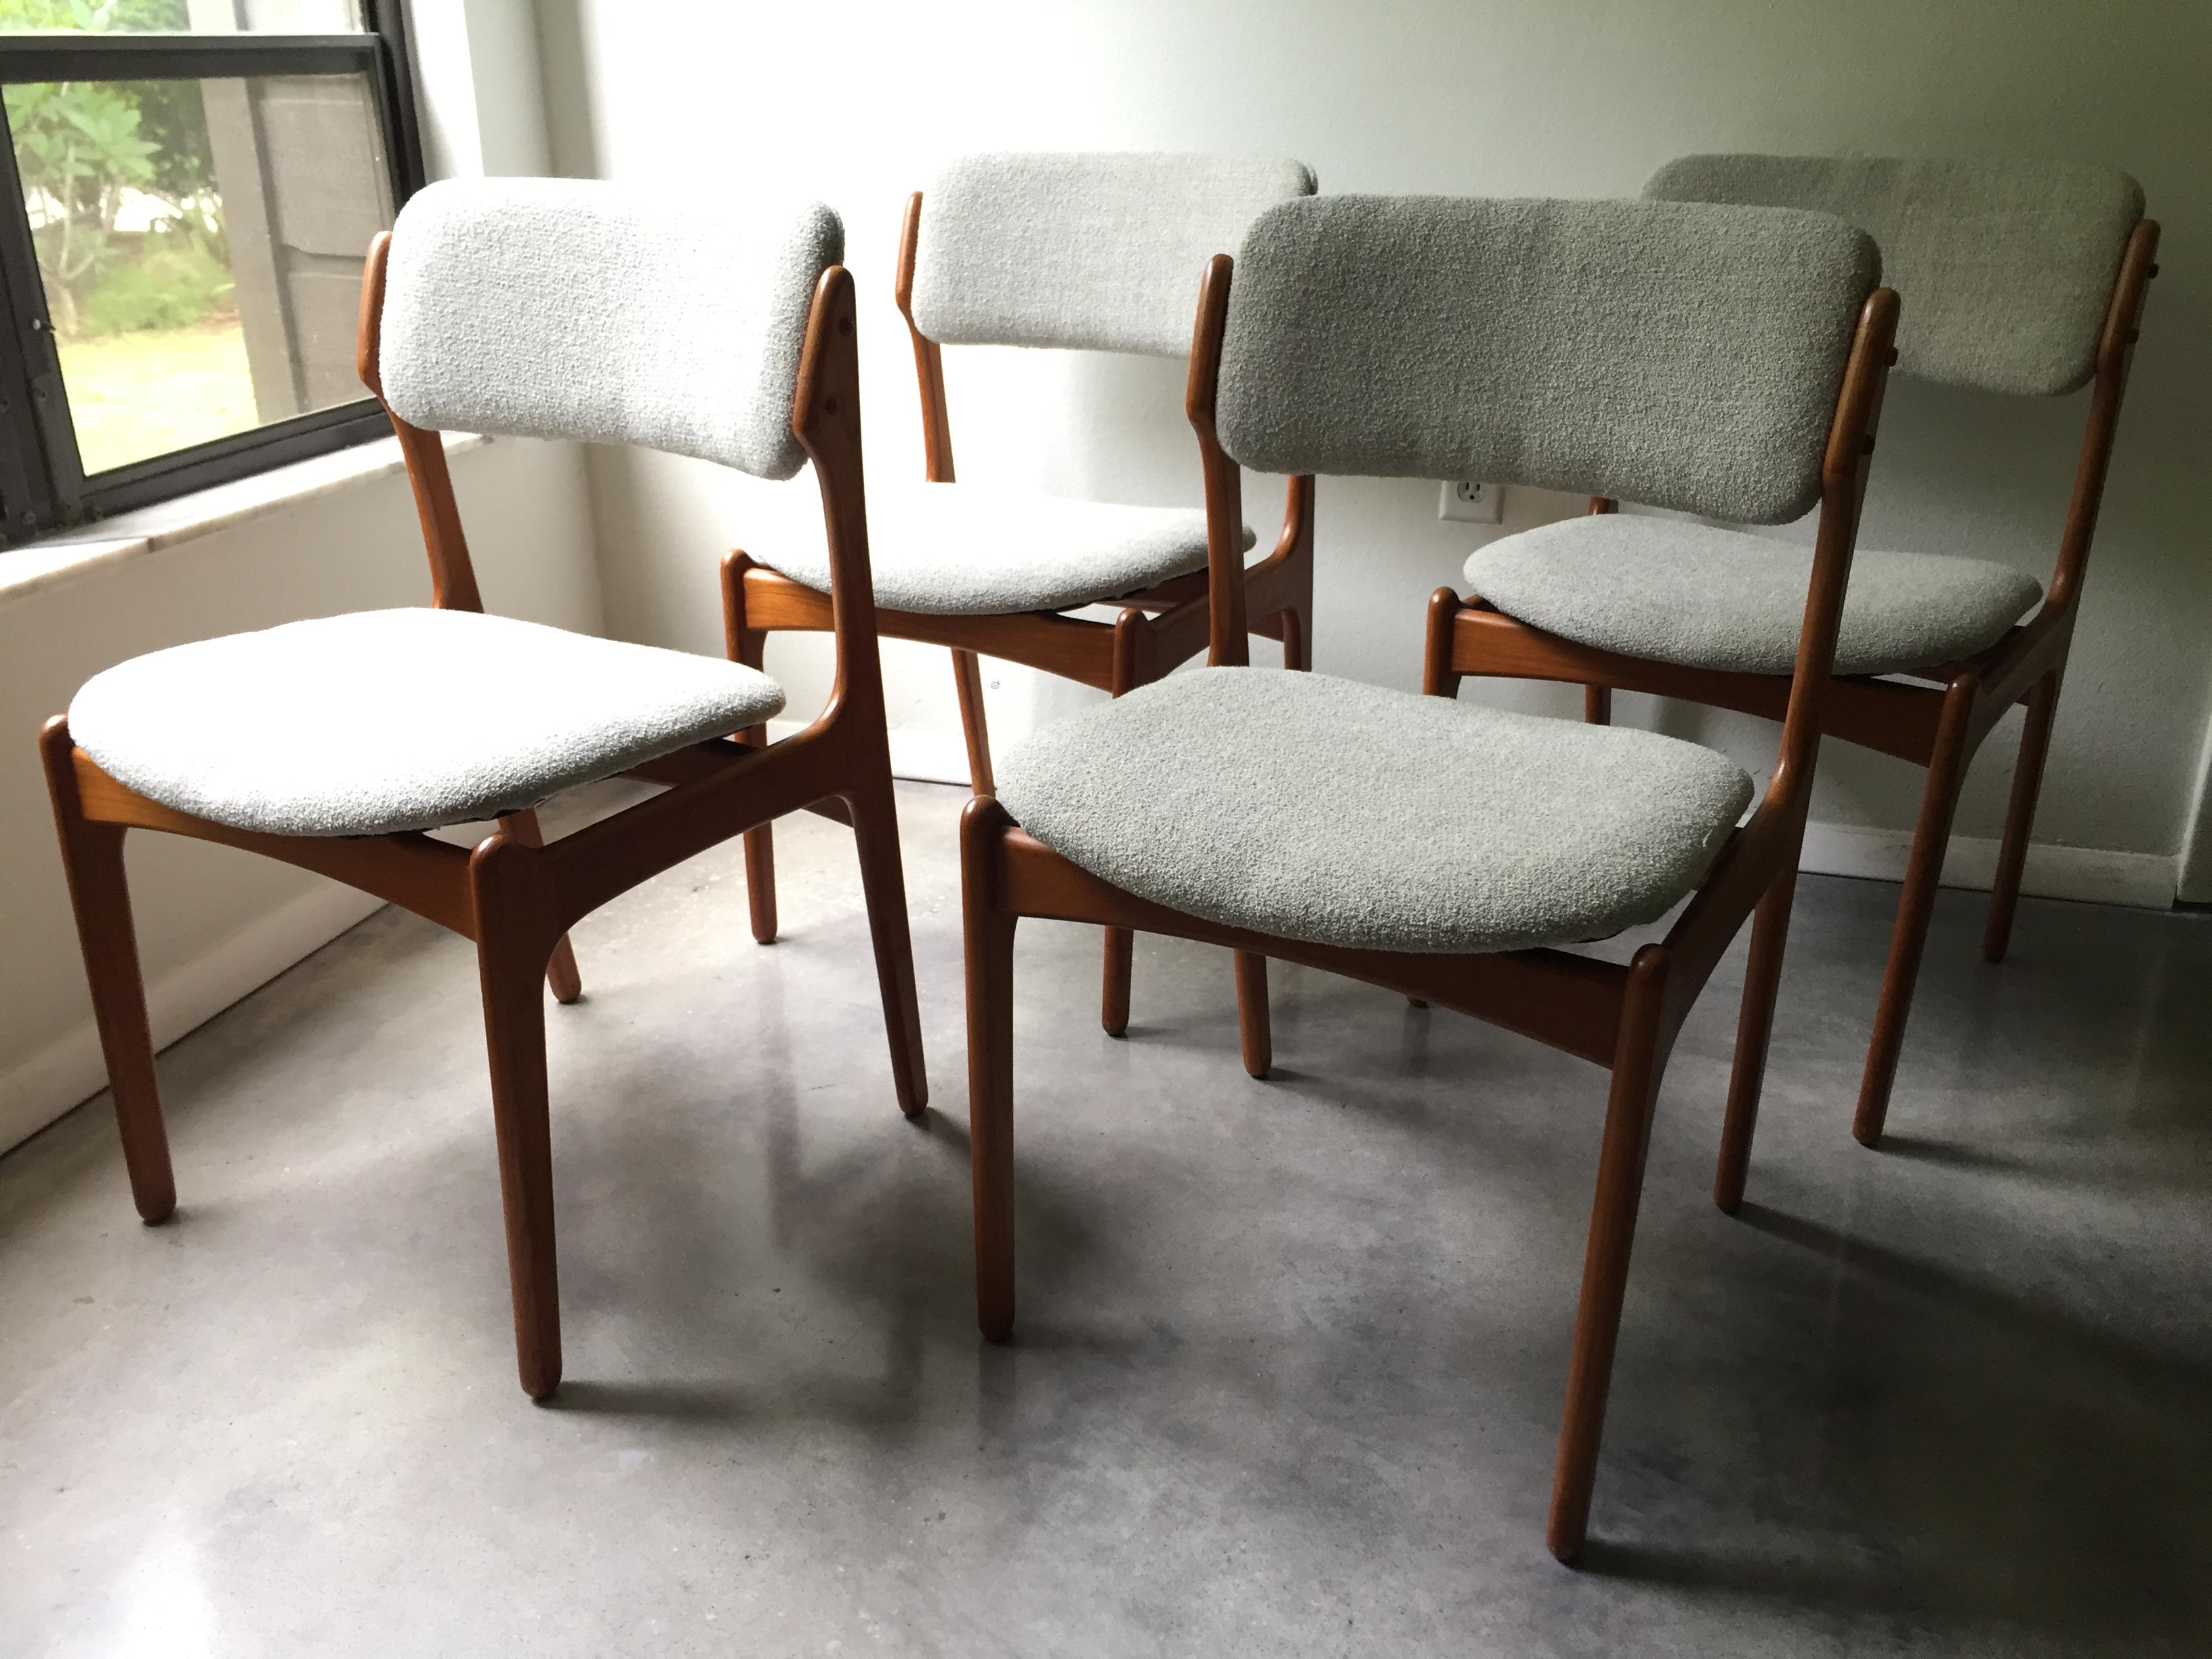 Simple Elegant Vintage Erik Buck O D Mobler Danish Dining Chairs Set of 4 Image 11 of Awesome - floating chair for bedroom Fresh